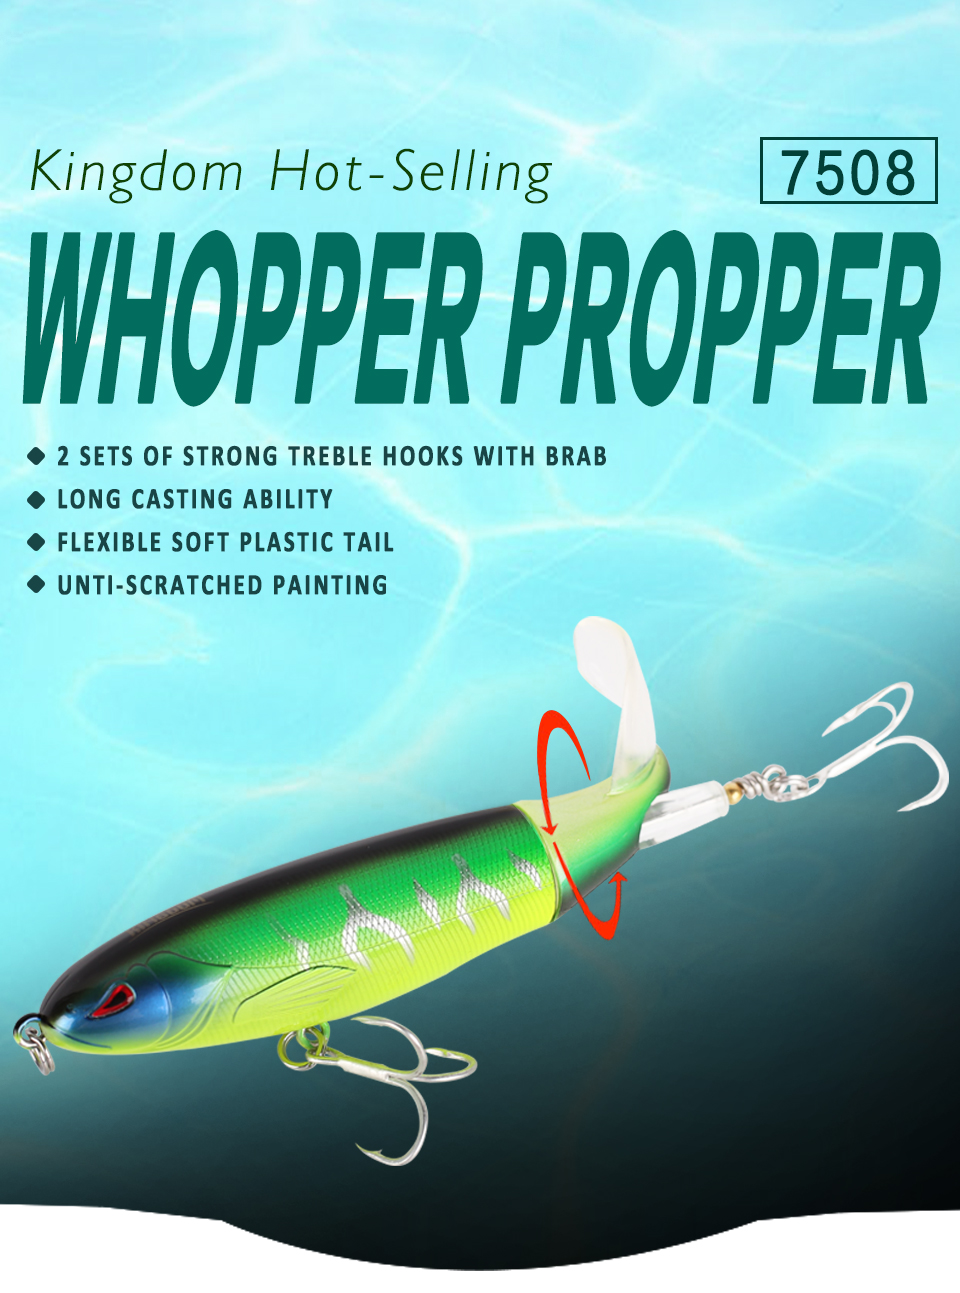 Kingdom Whopper Popper Fishing lures 9cm11cm13cm Topwater Floating Artificial Bait Soft Rotating Tail VMC Hooks fishing tackle